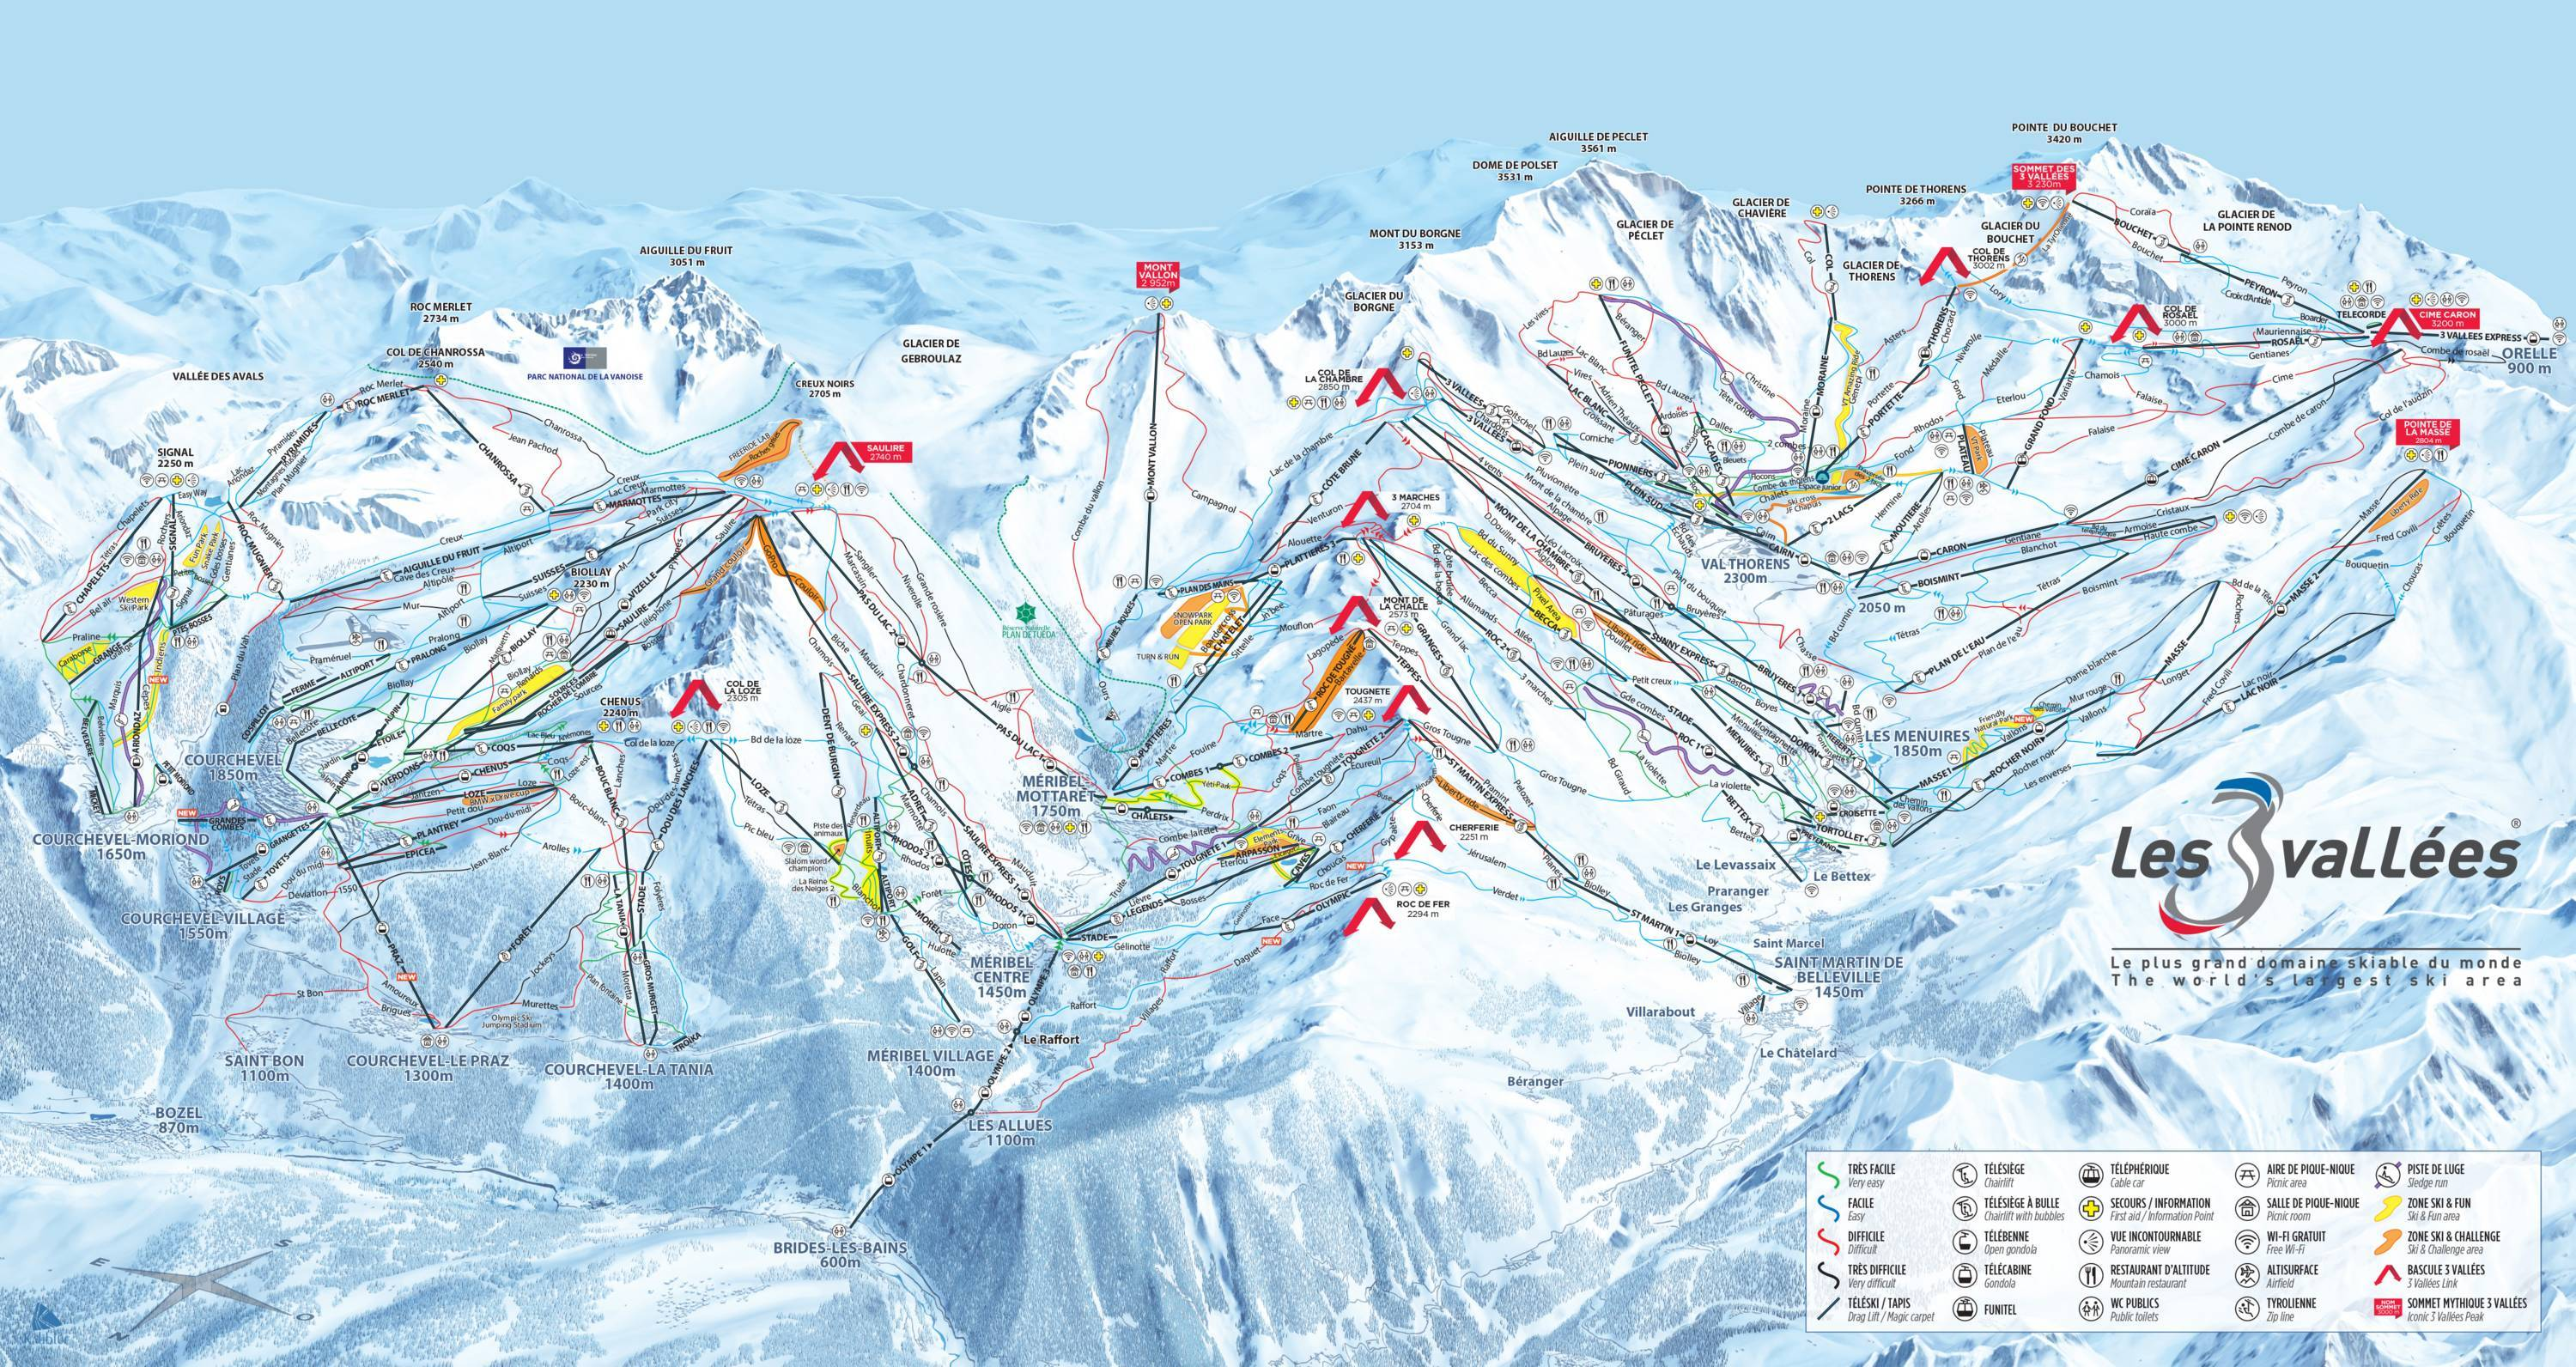 Trail Map Les 3 Vallees Val Thorens Les Menuires Meribel Courchevel